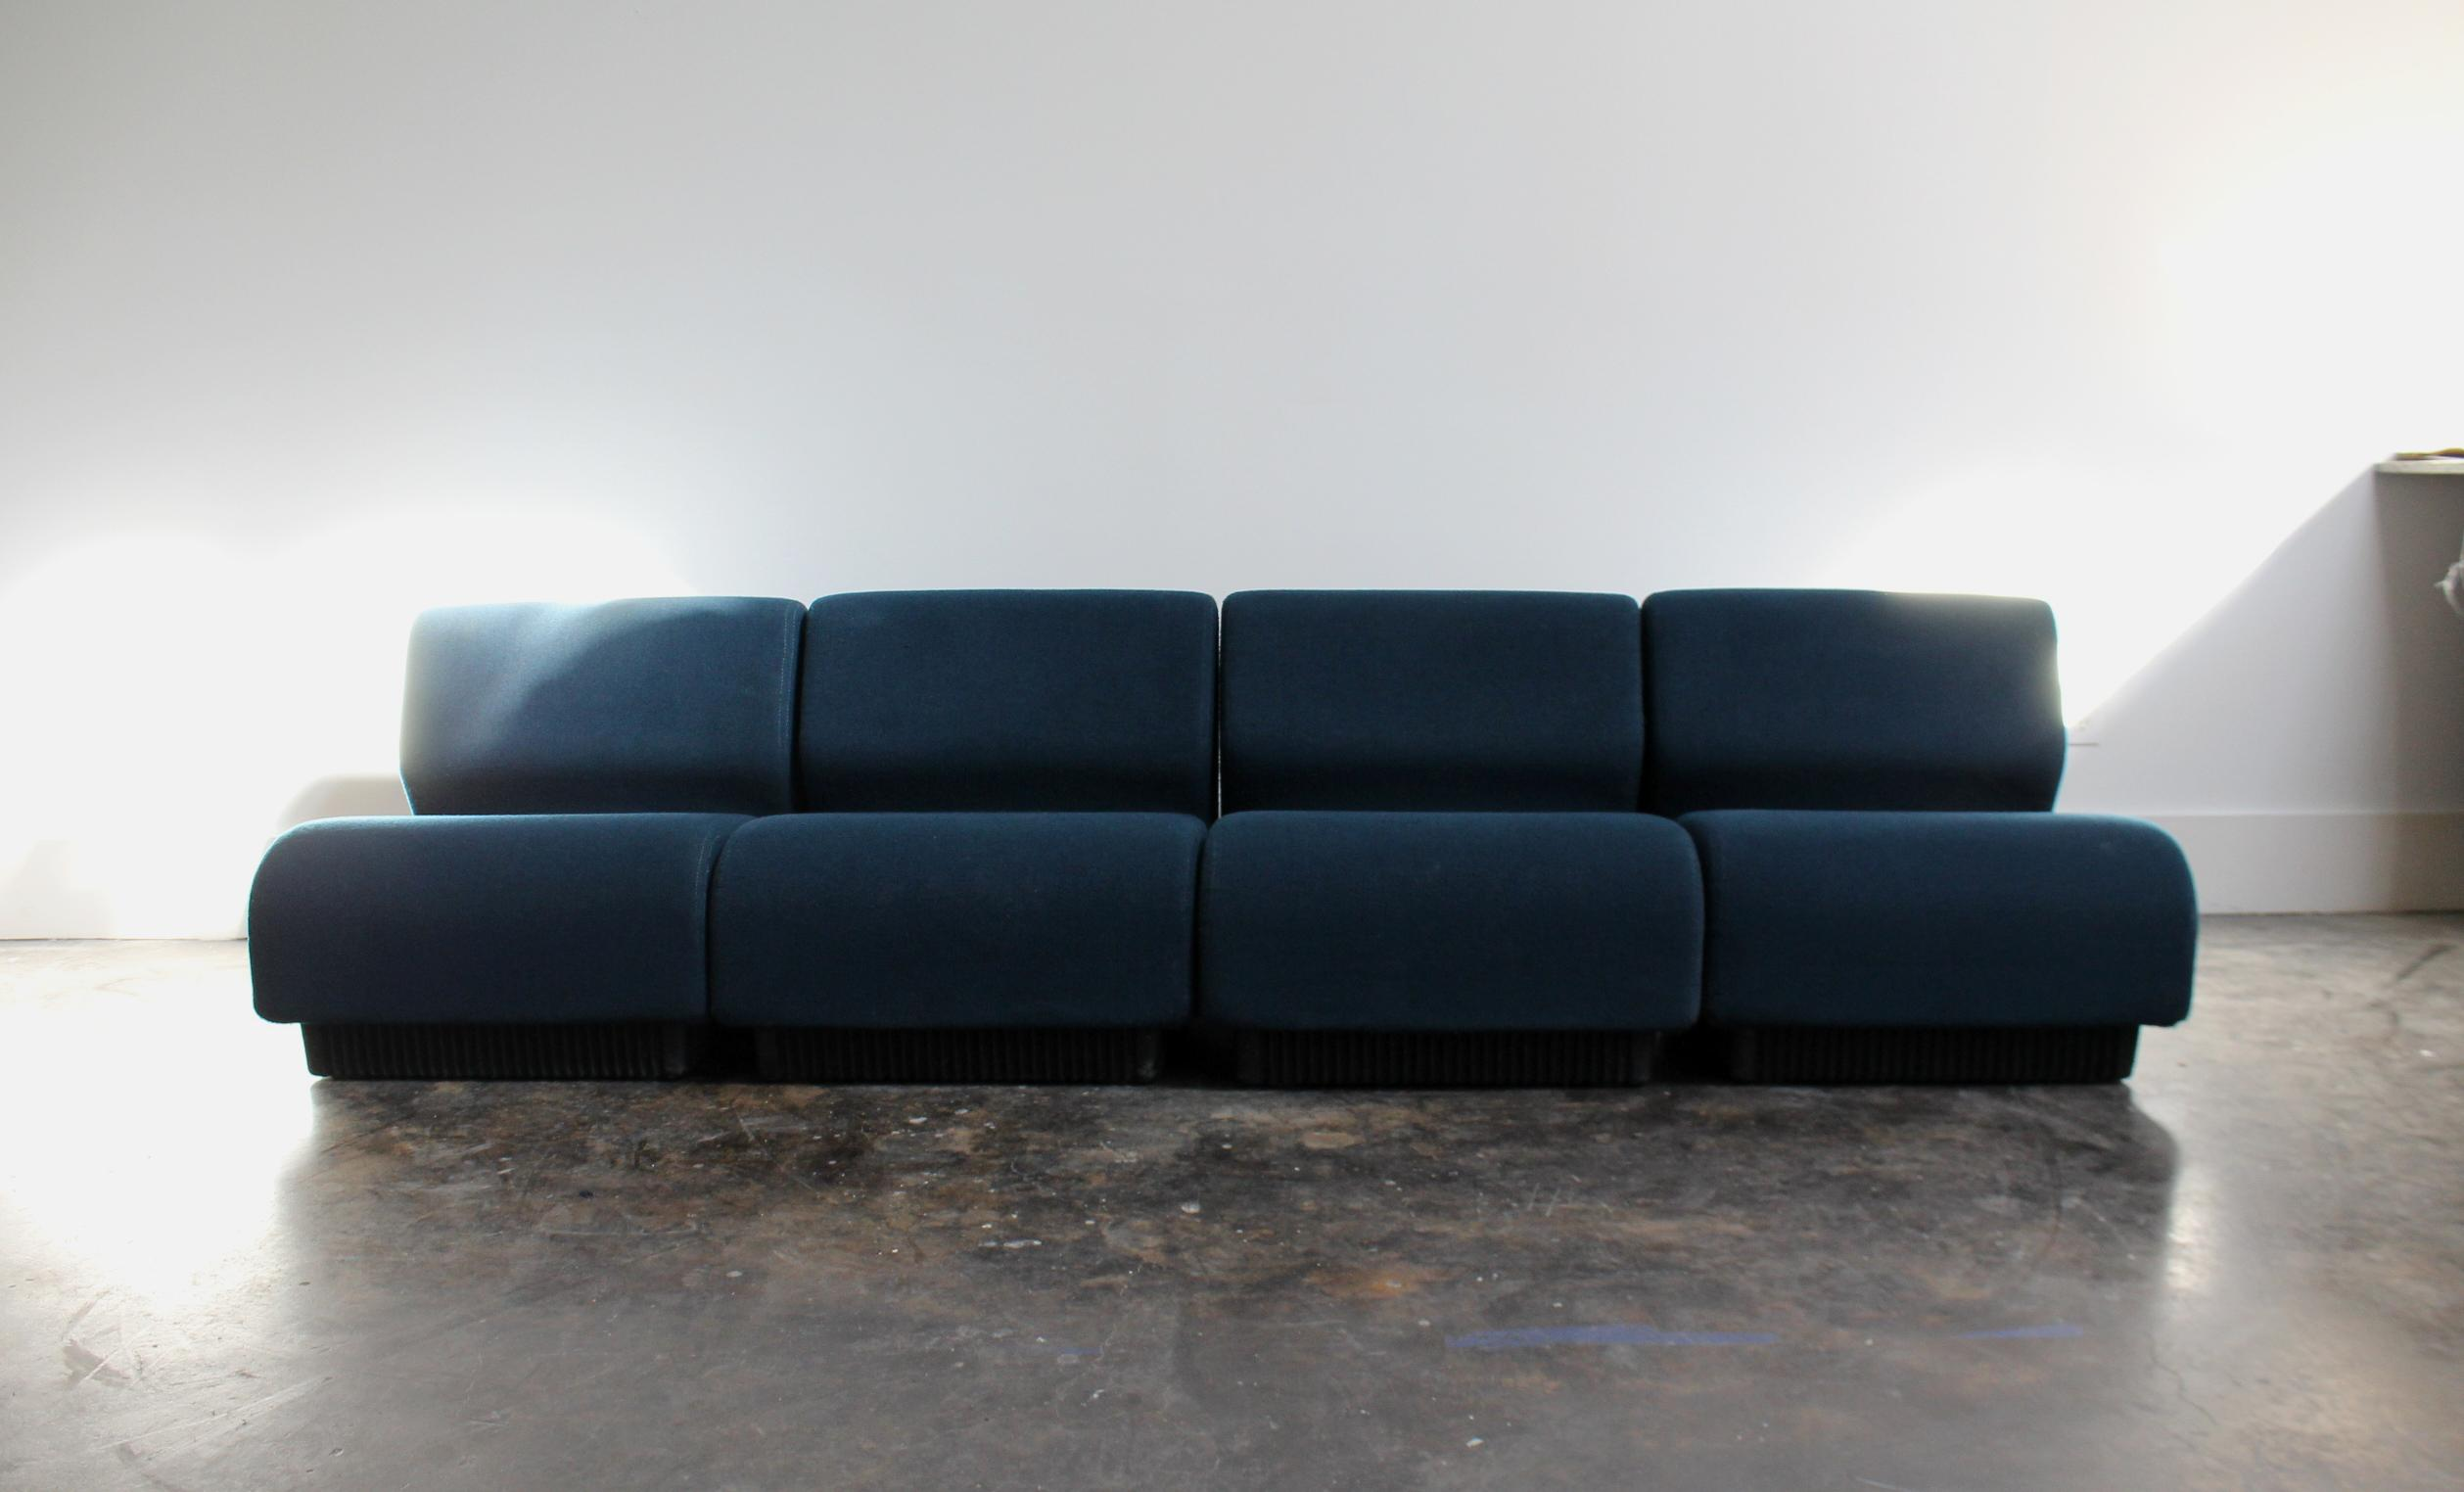 Lovely Vintage Modern Modular Sofa By Don Chadwick For Herman Miller   Image 2 Of  11